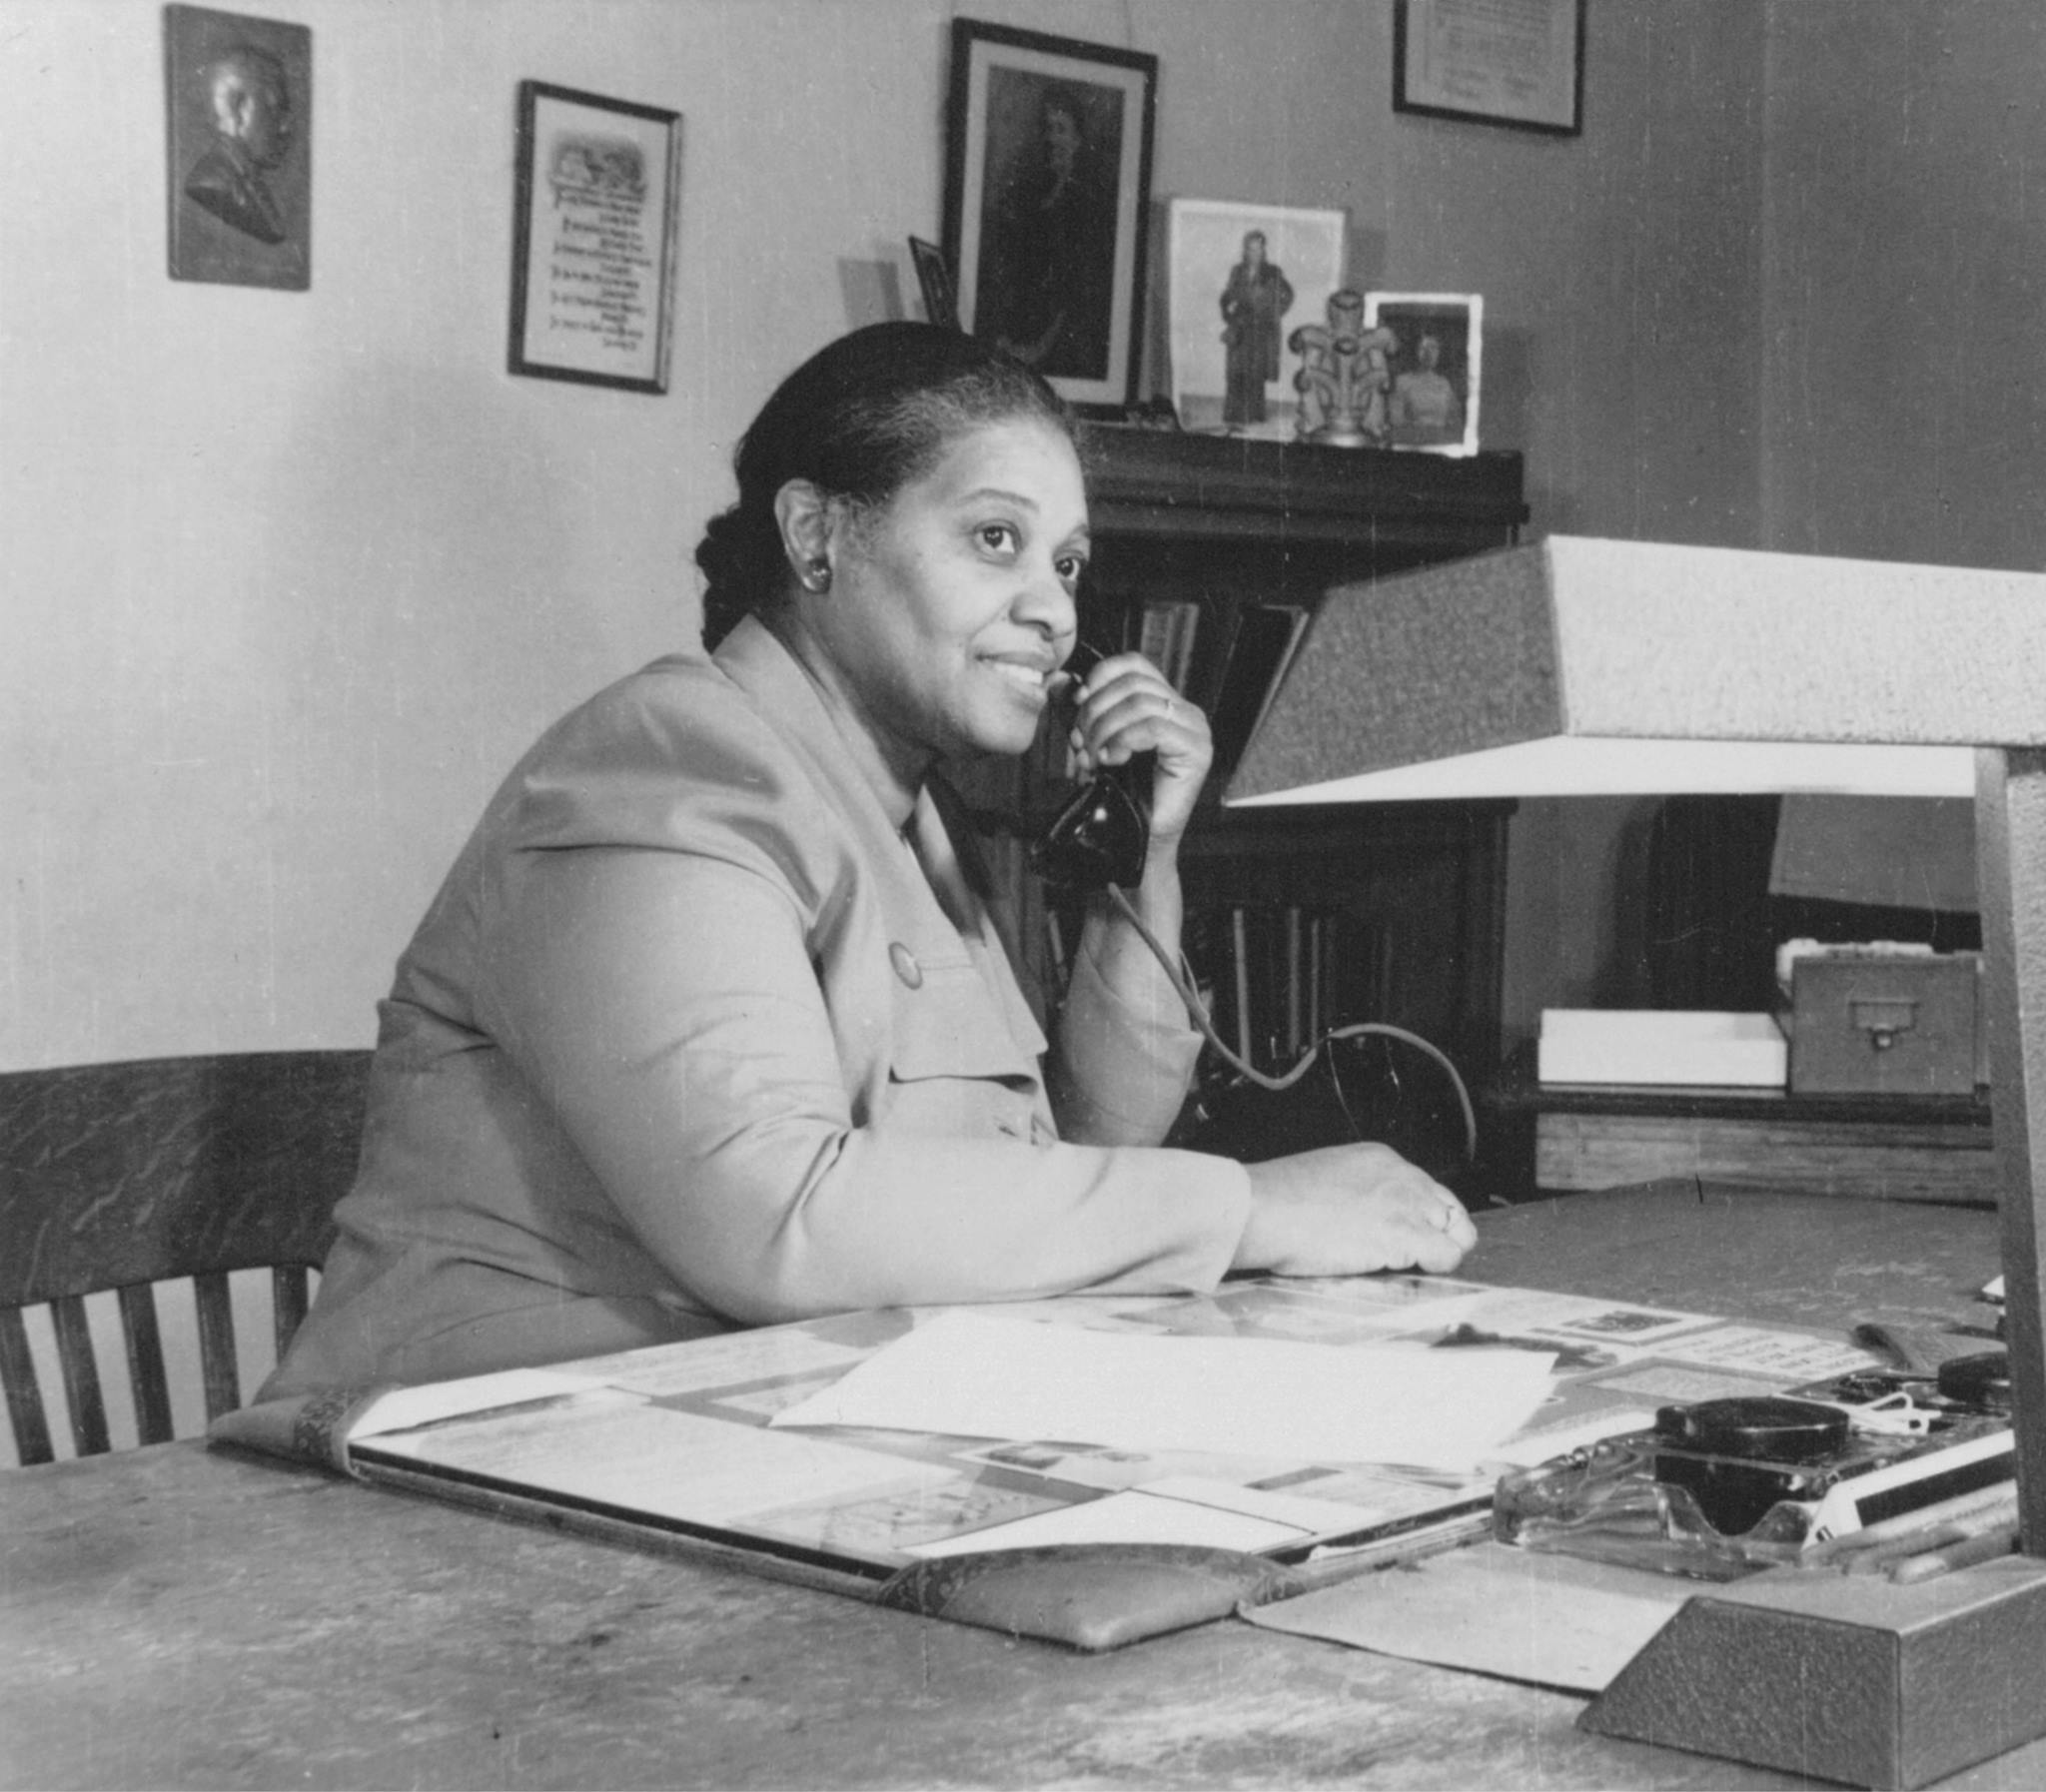 Wilhelmina Crosson, The second president of PMI, circa 1955